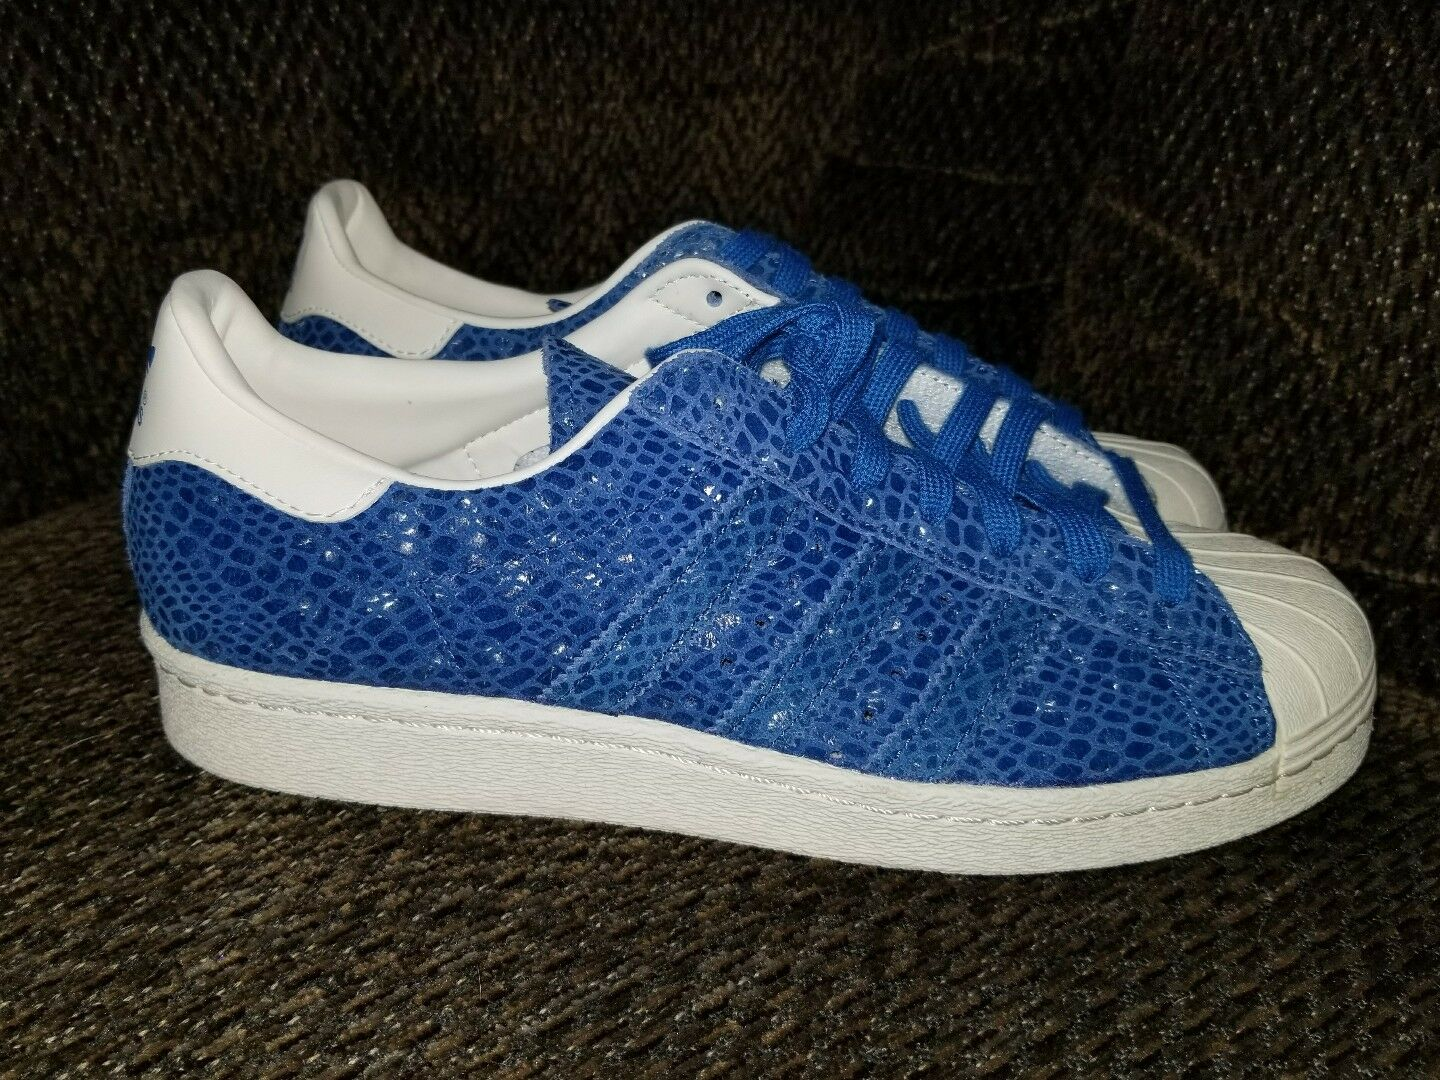 buy popular 5cf99 33c43 Adidas Originals Originals Originals Superstar 80s Snakeskin Size 8.5  S81326 Surf Blue ec4a97